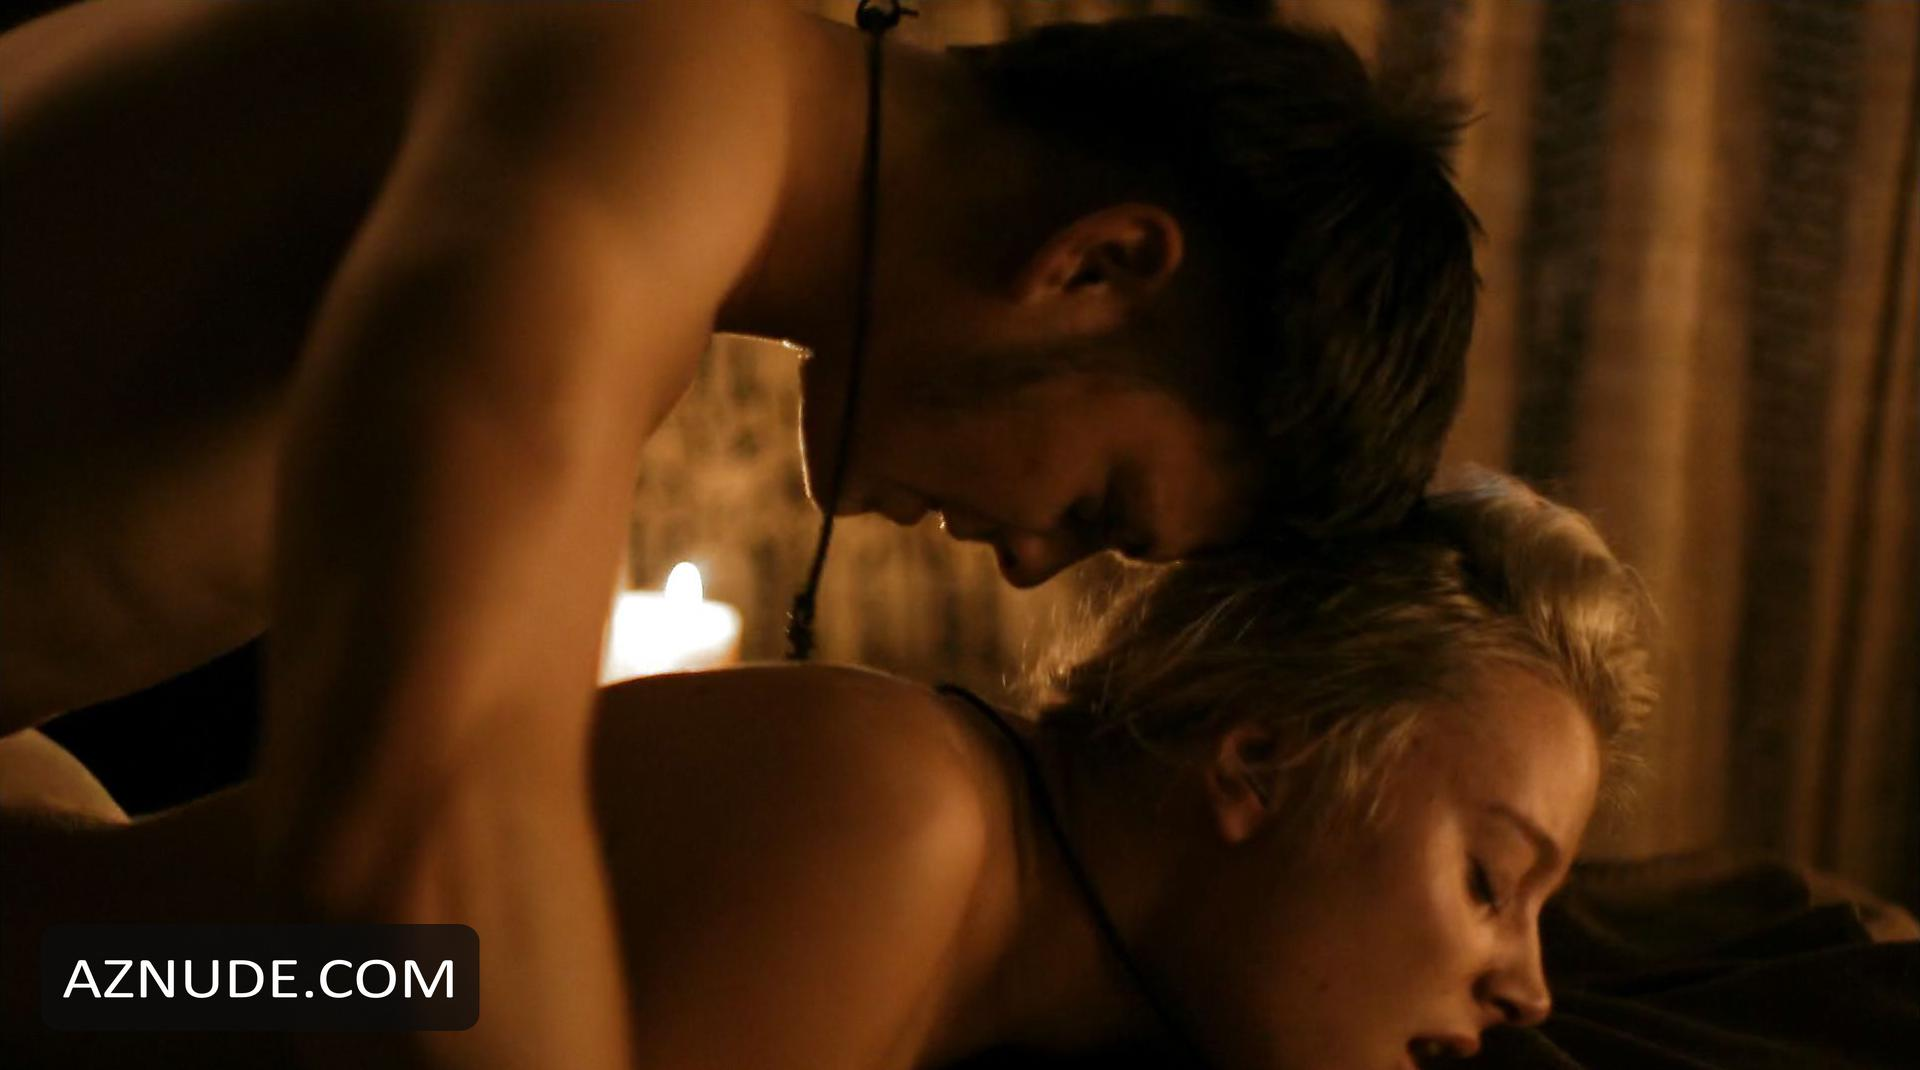 Jennie jacques nude sex from vikings on scandalplanetcom - 1 5